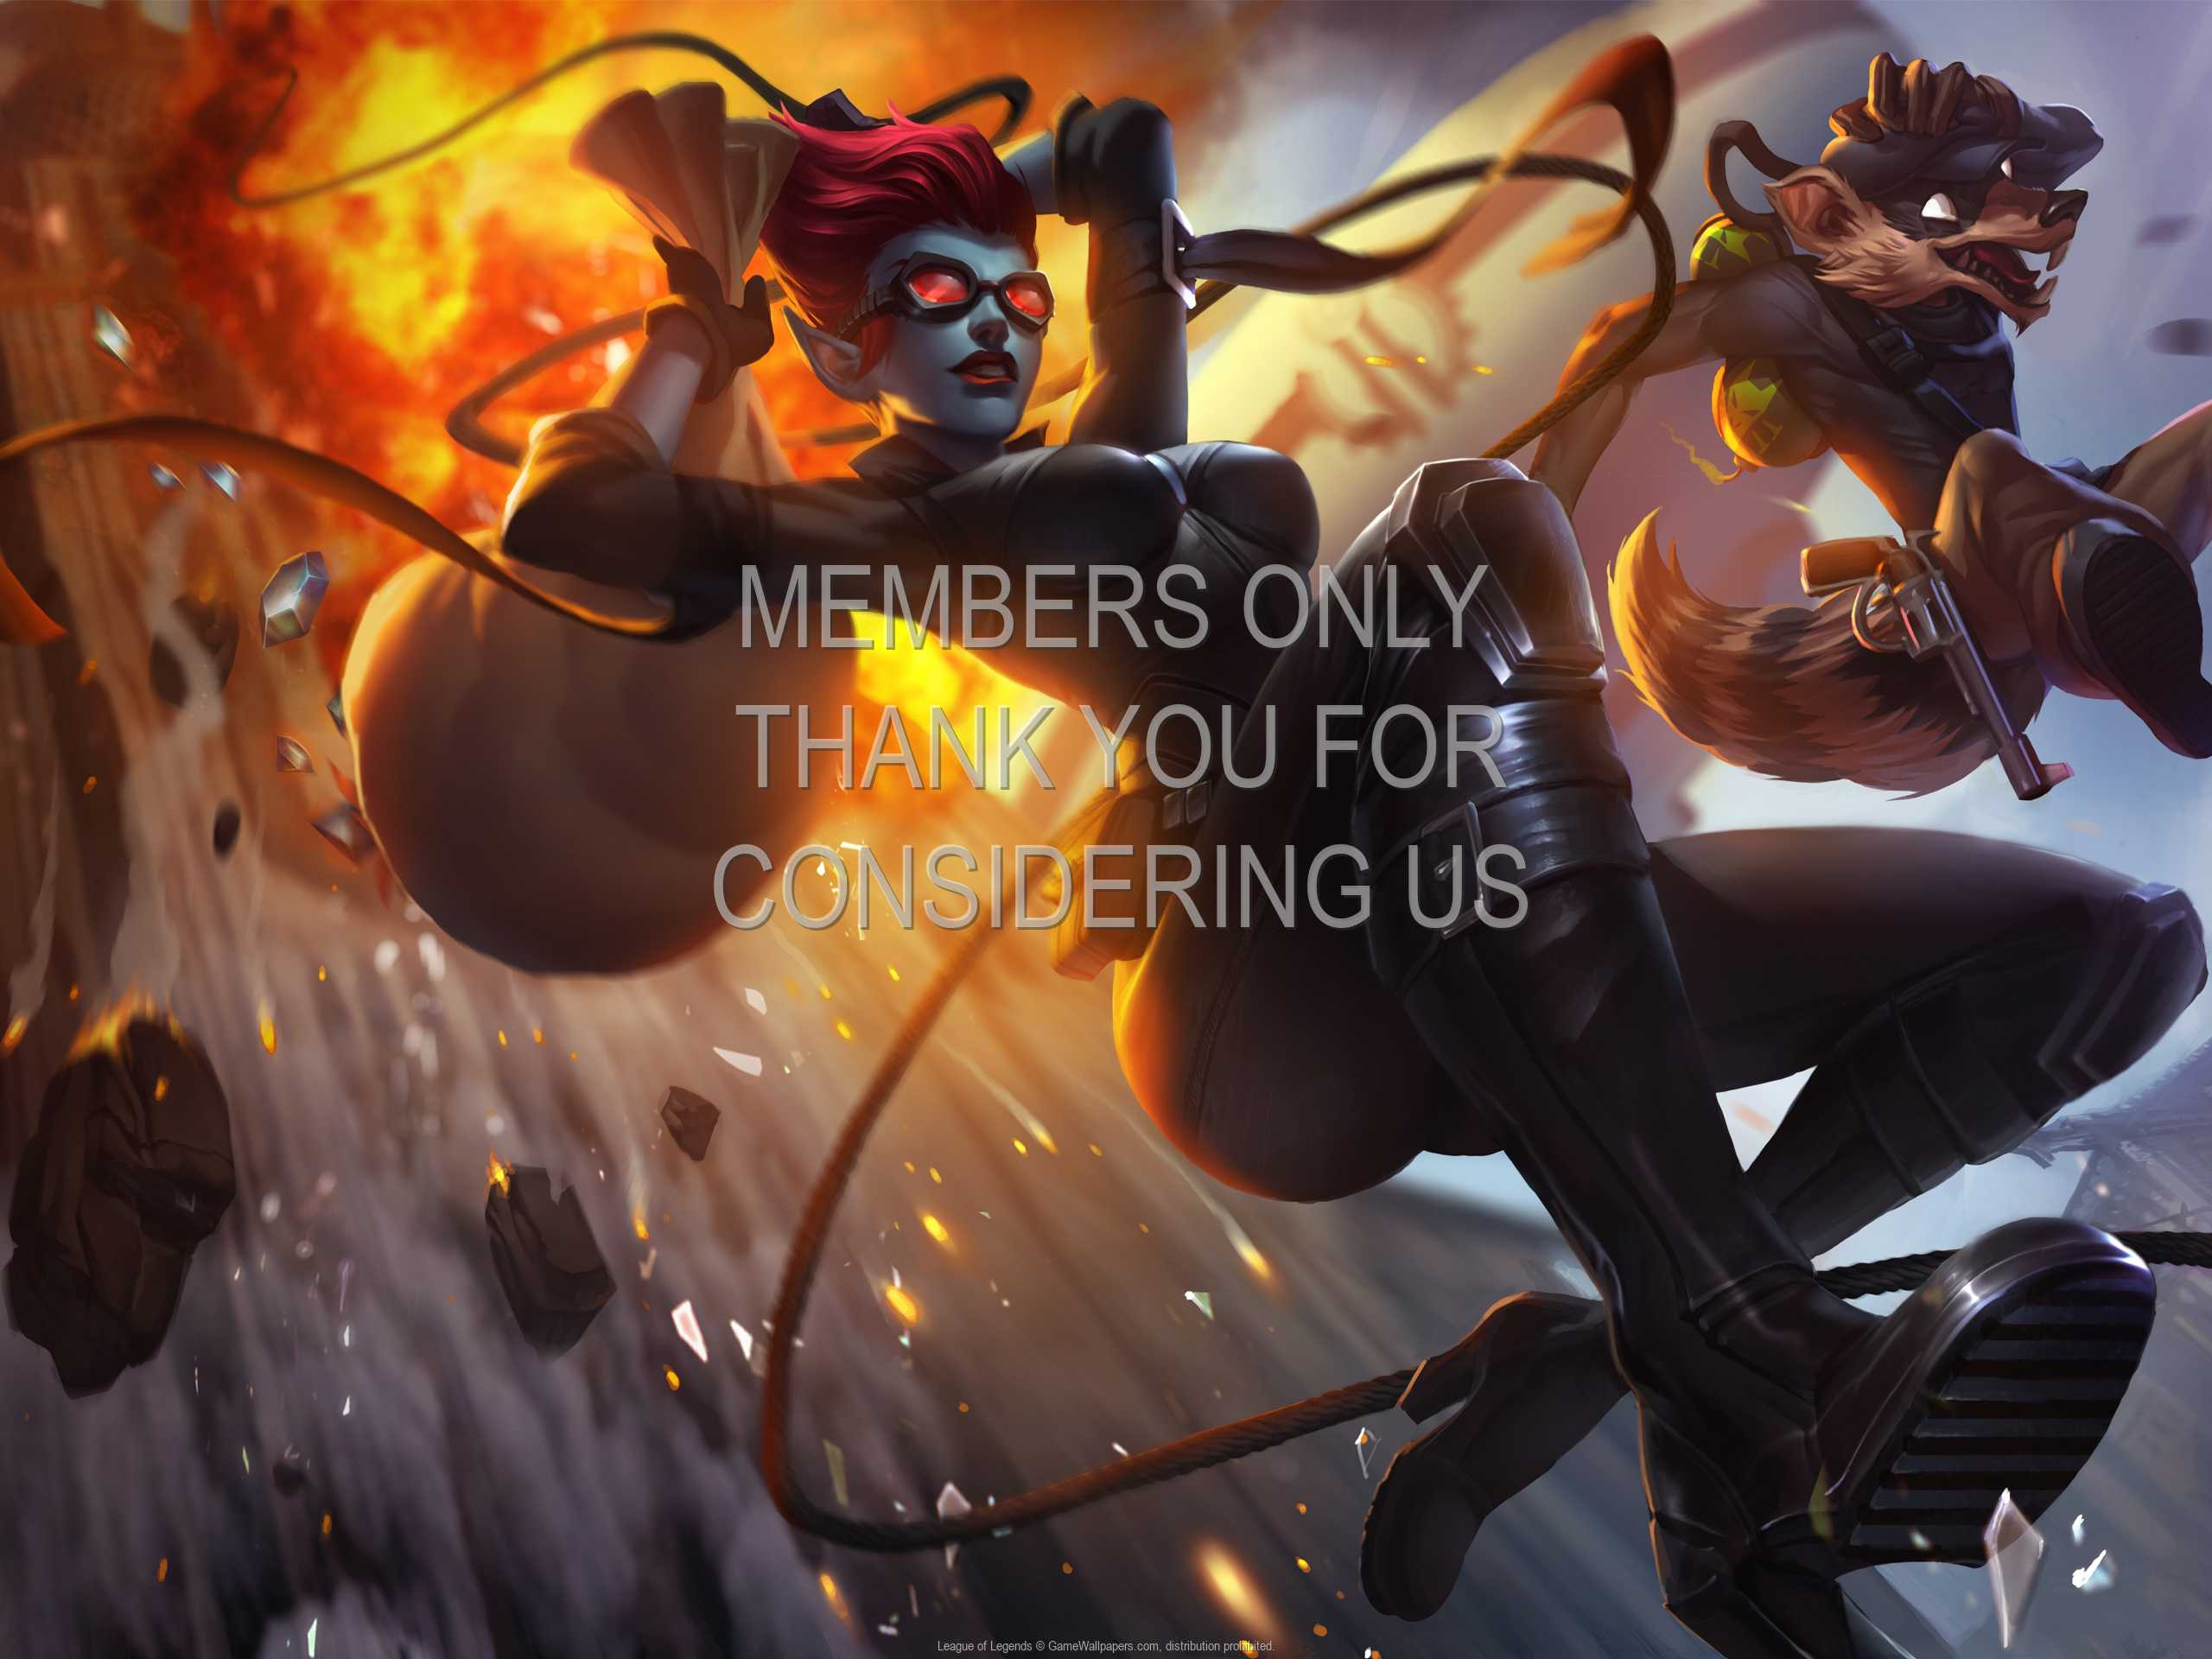 League of Legends 1080p Horizontal Mobile wallpaper or background 36